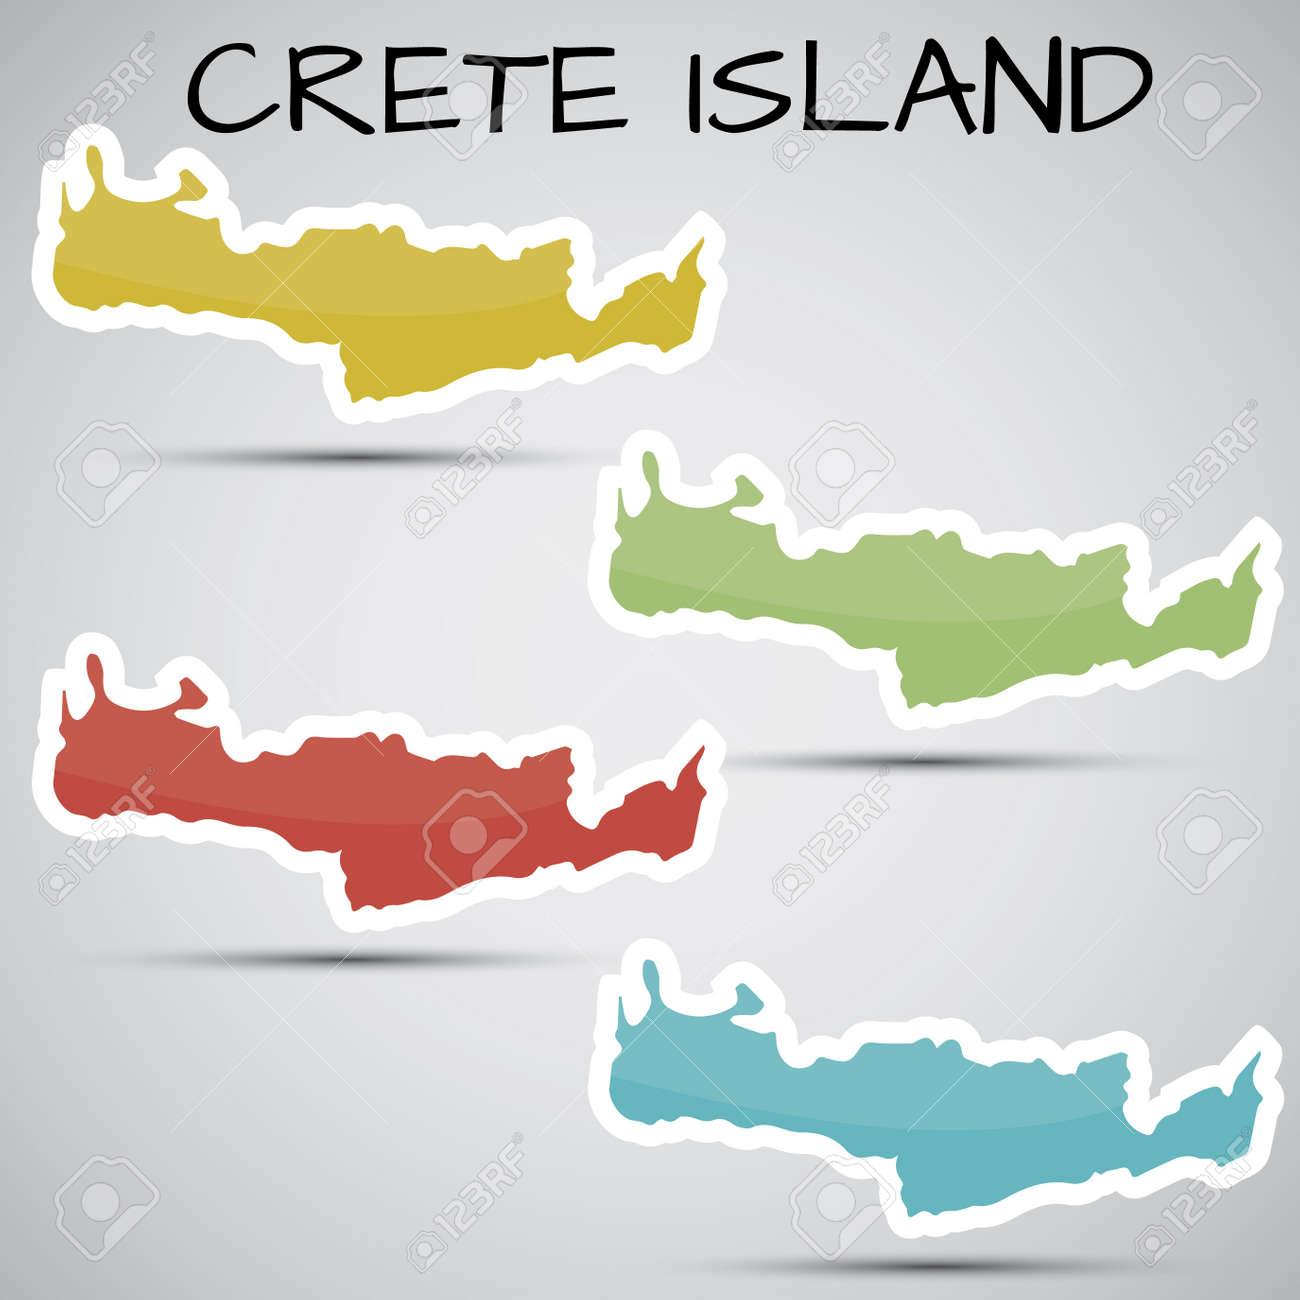 stickers in form of Crete Island, Greece Stock Vector - 21633698